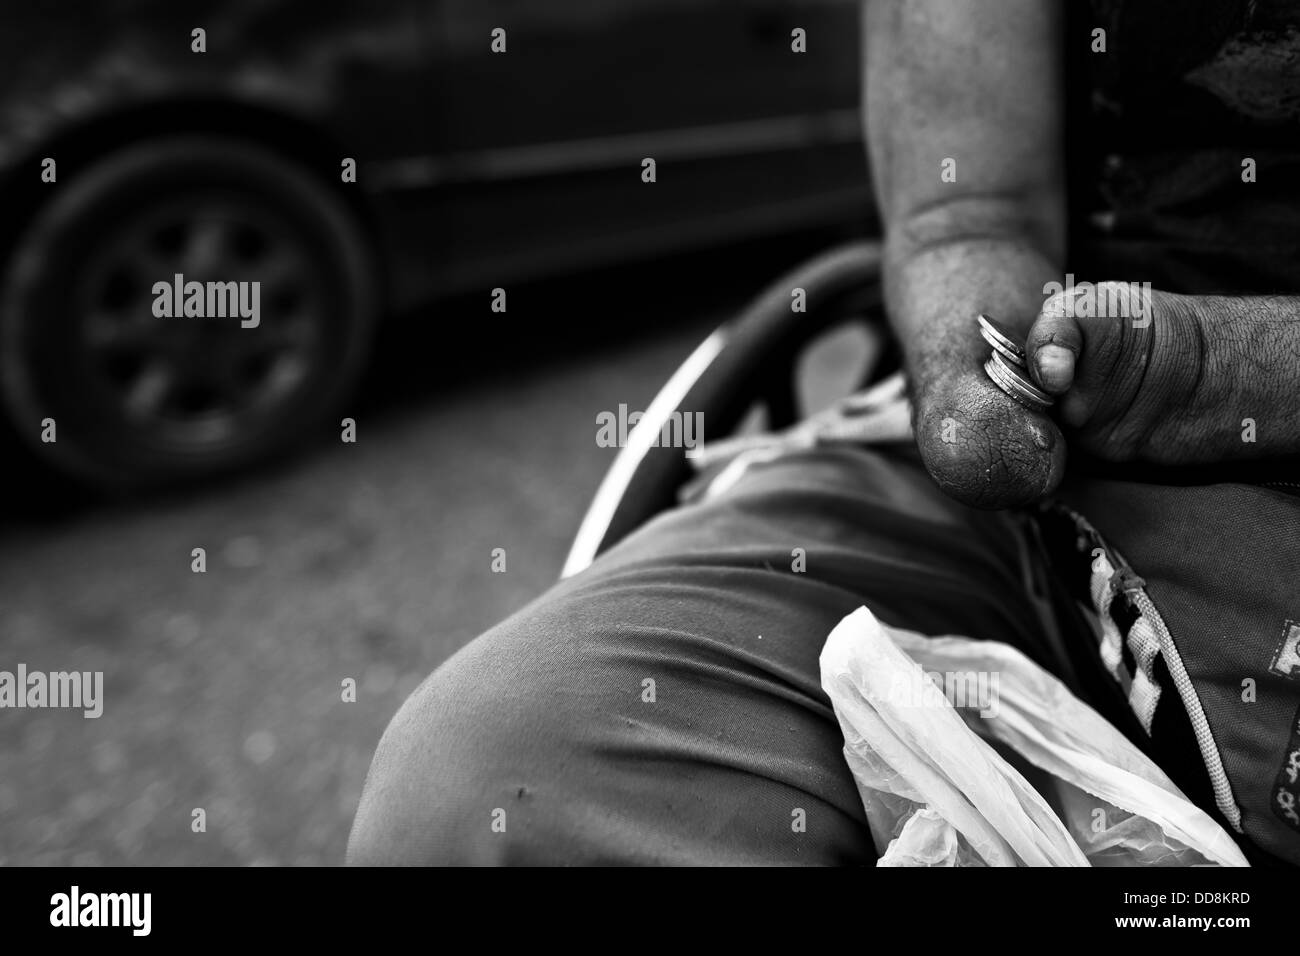 A Colombian disabled athlete counts money earned by selling pocket calendars on the motorway in Bogota, Colombia. - Stock Image